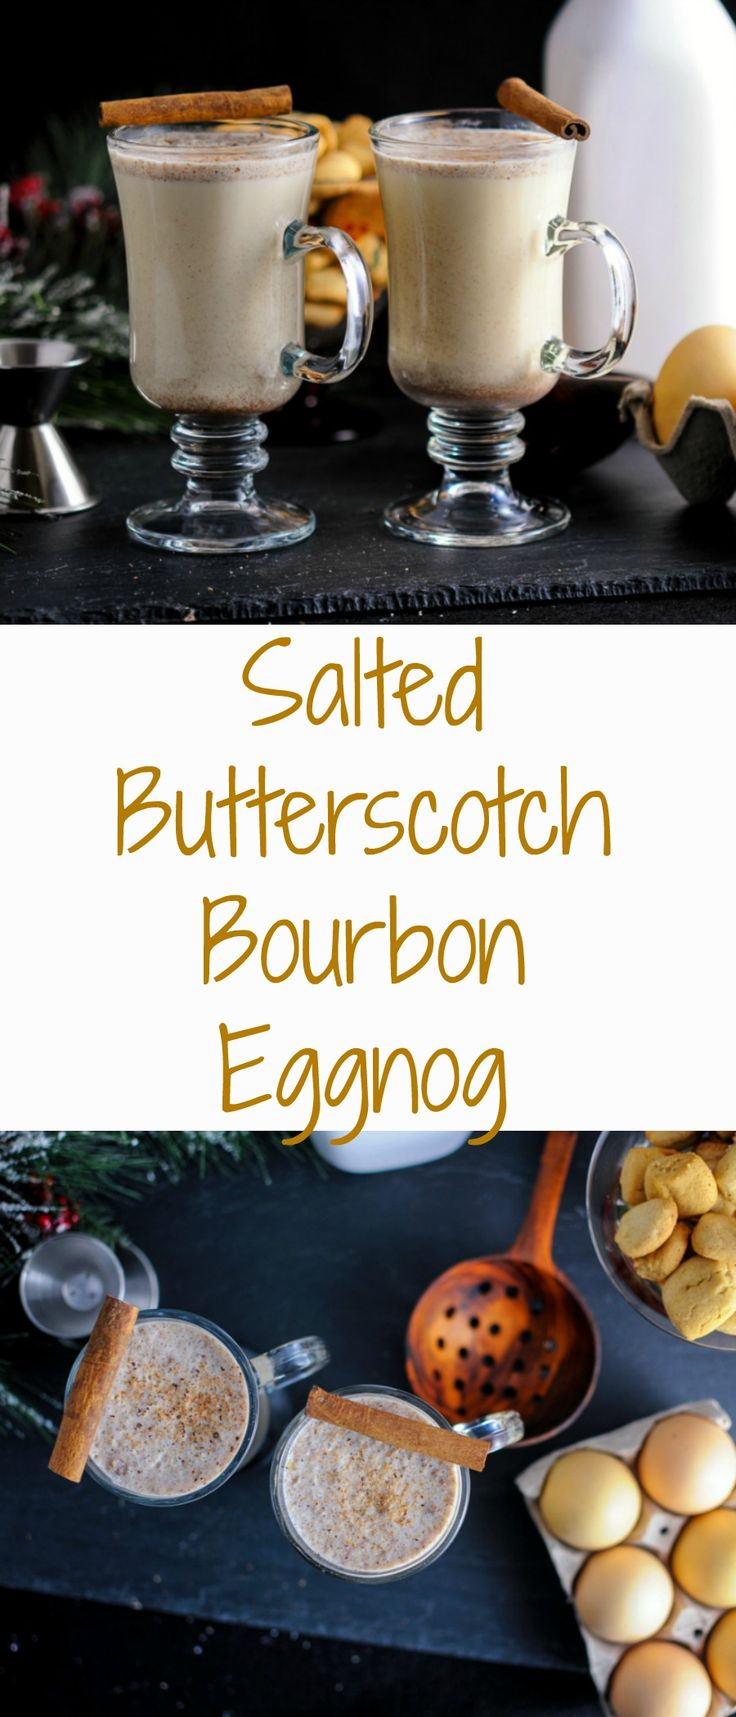 Salted Bourbon Buttererscotch Eggnog cocktail Recipe, homemade, drinks, alcoholic, holiday, Christmas, spiked, shots